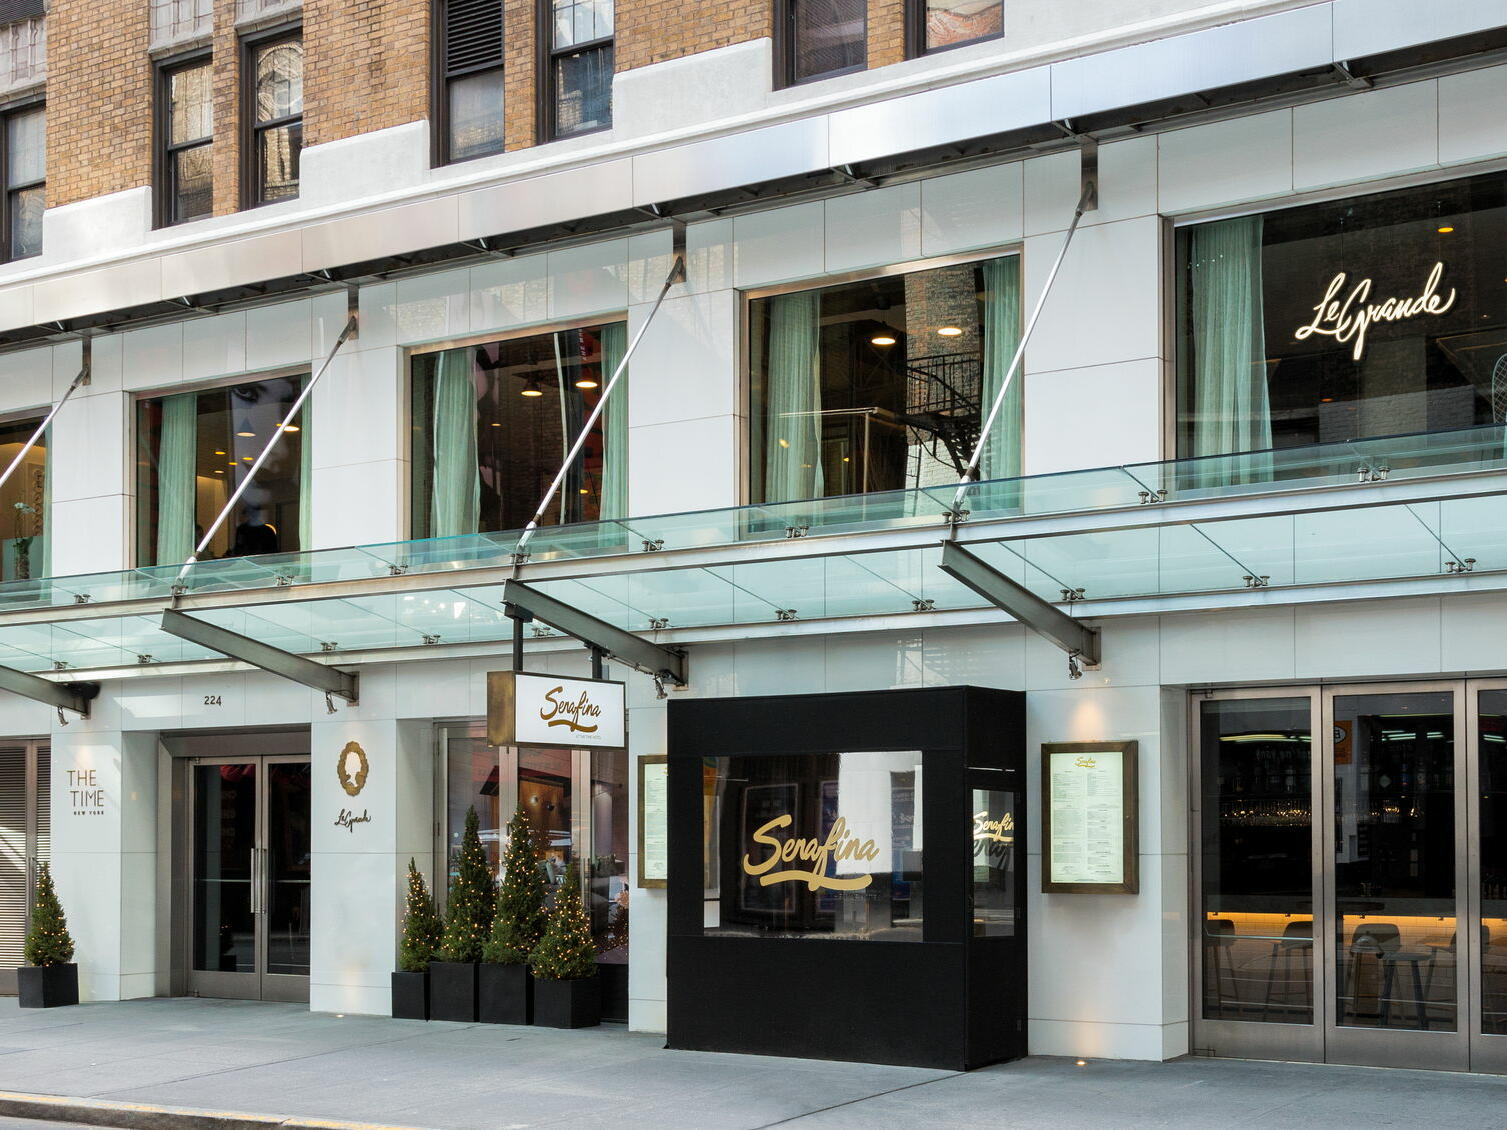 Exterior & roadside view of Serafina at The Time New York